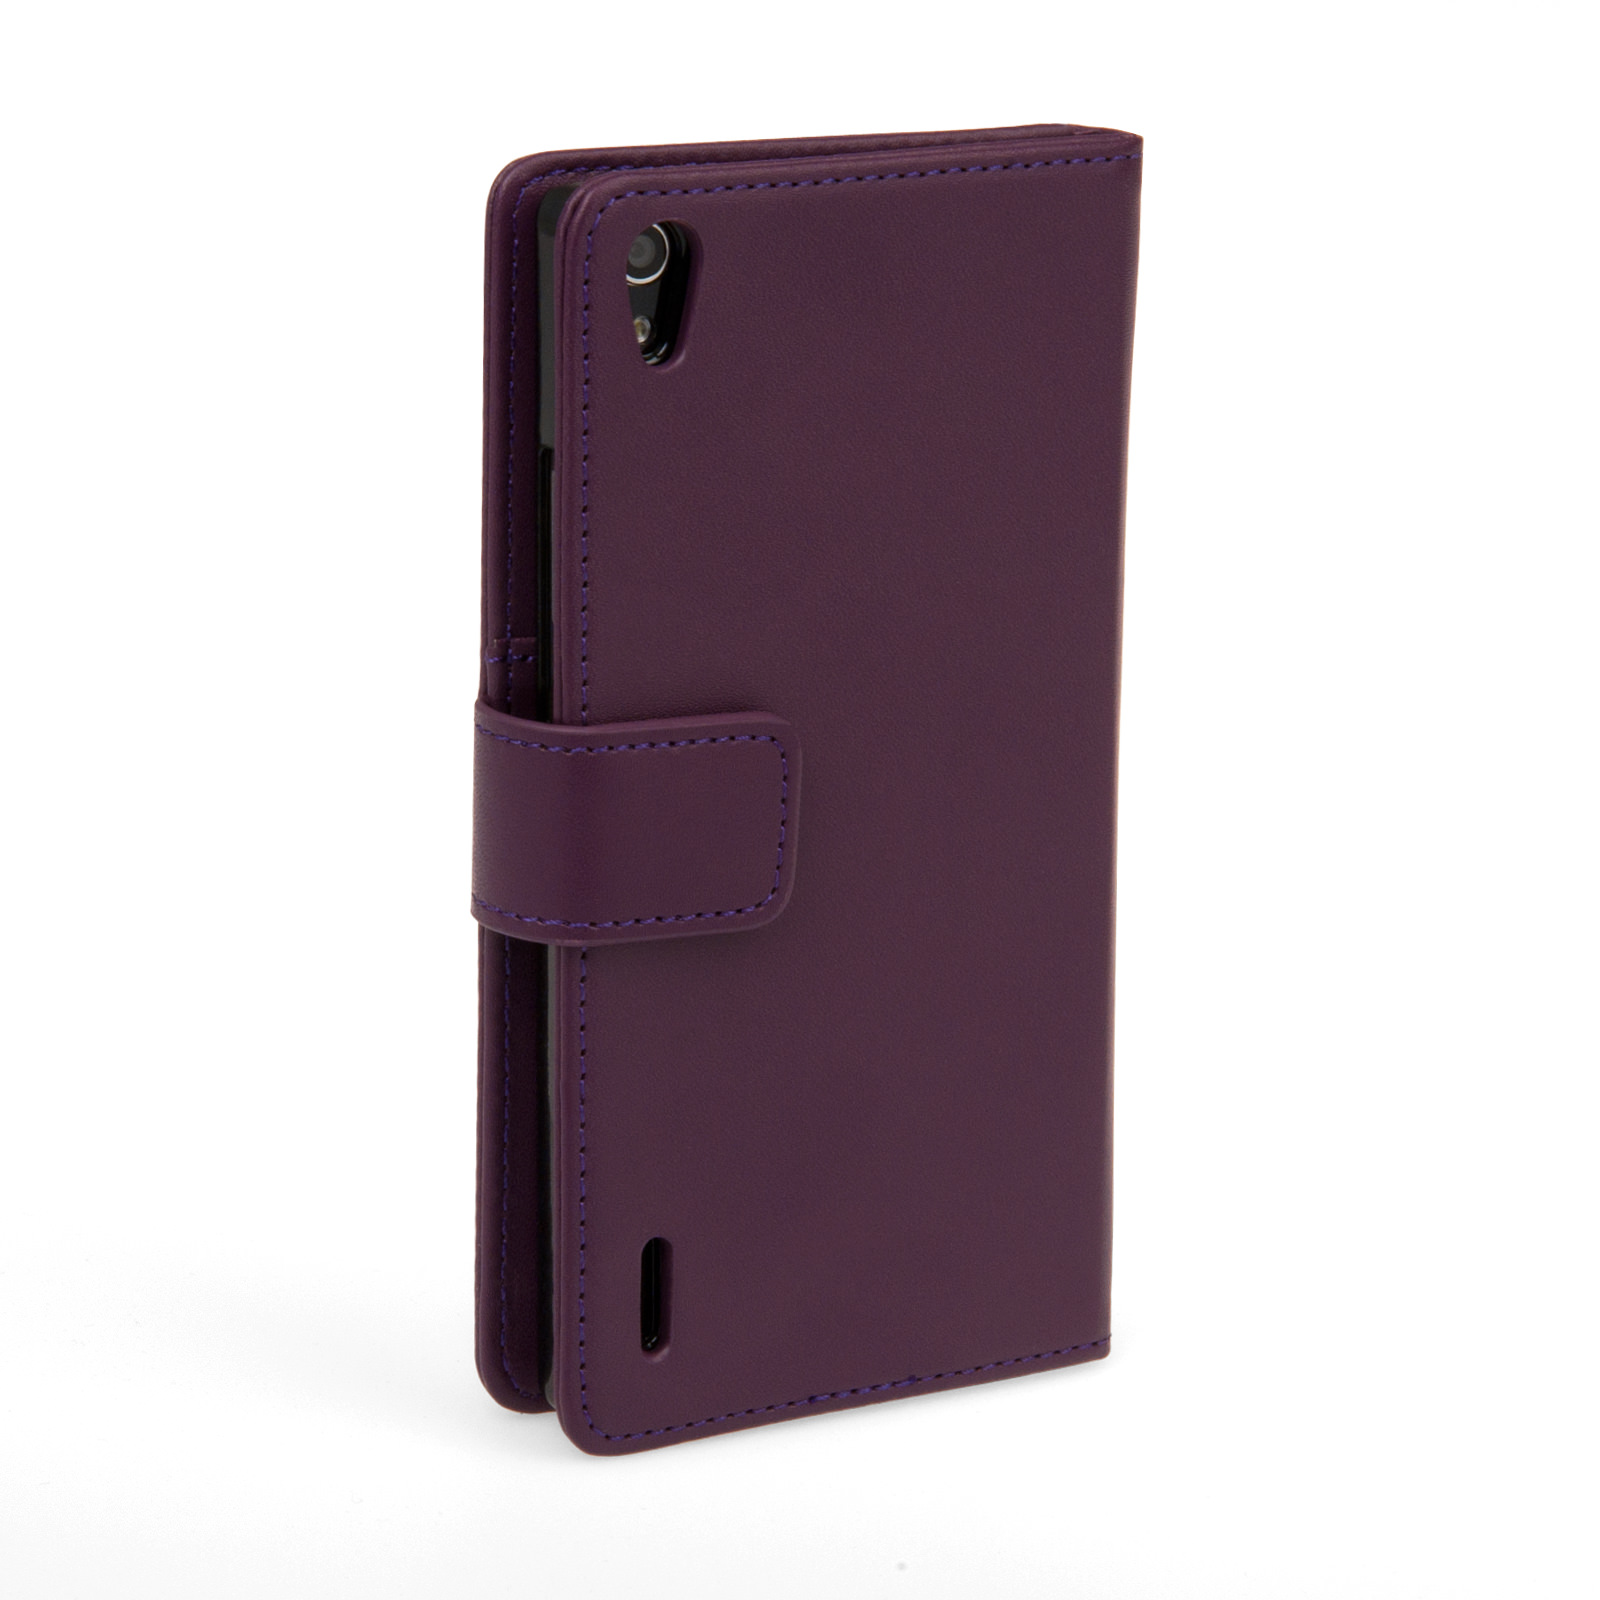 YouSave Huawei Ascend P7 Leather-Effect Wallet Case - Purple